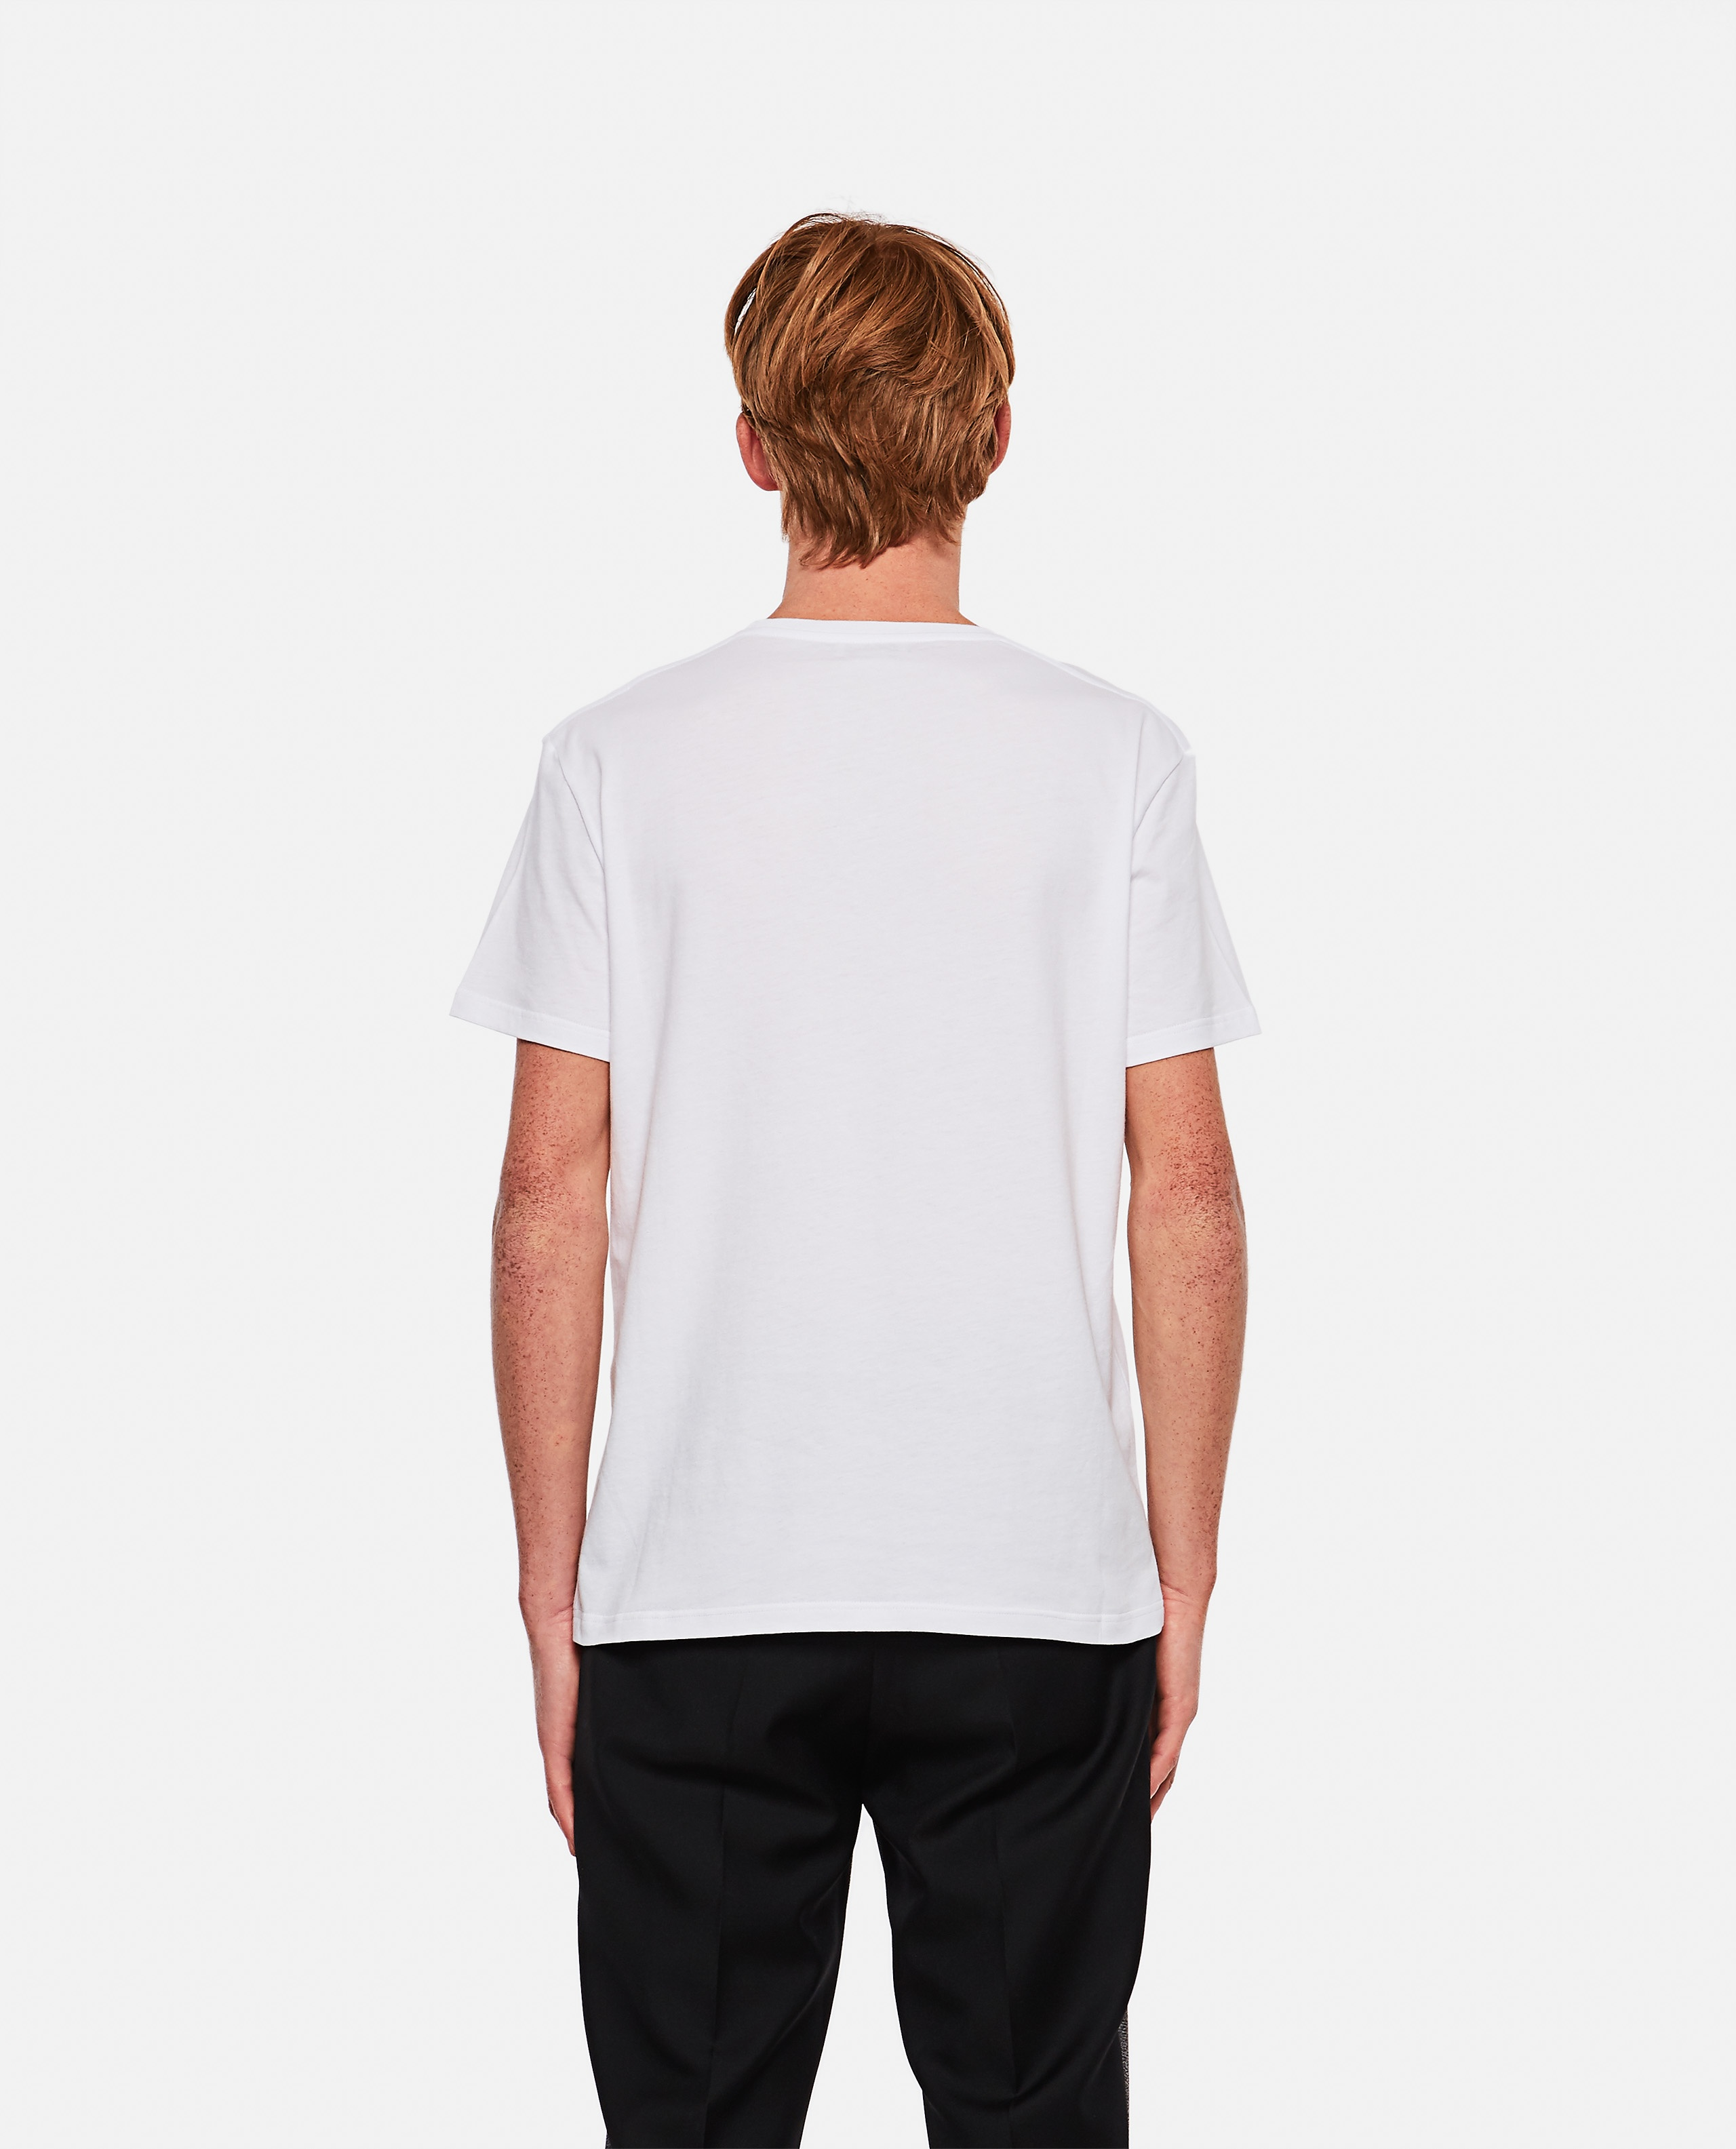 T-shirt with embroidery Men Alexander McQueen 000291000042843 3